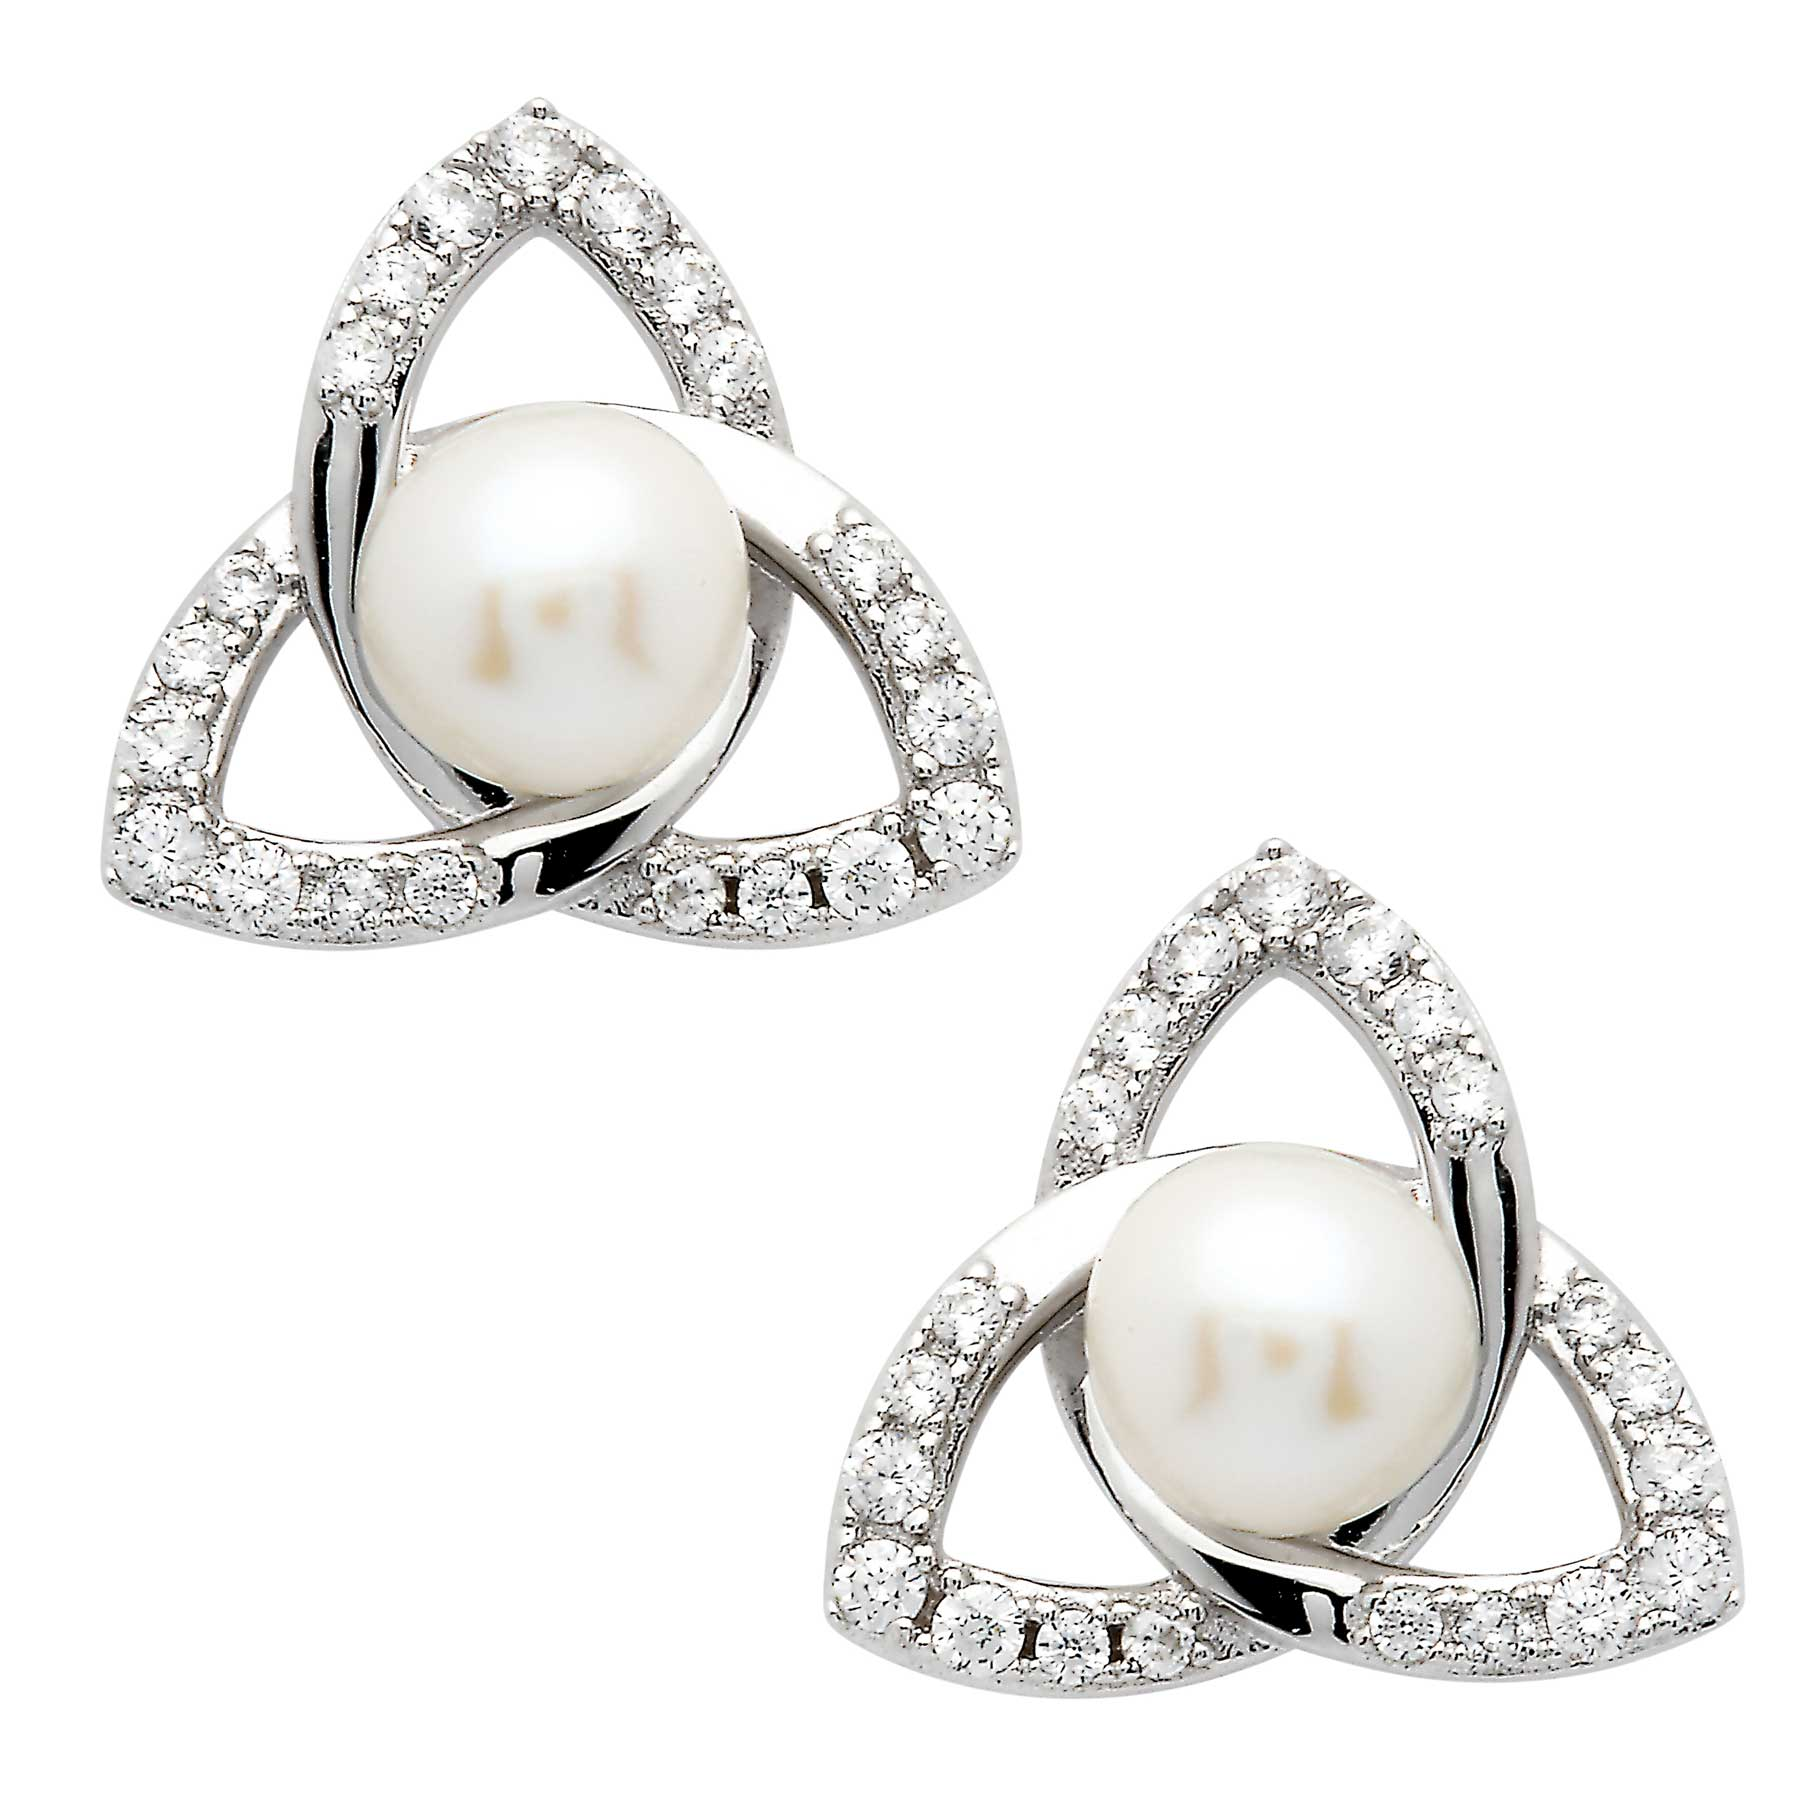 Irish Earrings | Sterling Silver Trinity Knot Crystal & Pearl Earrings